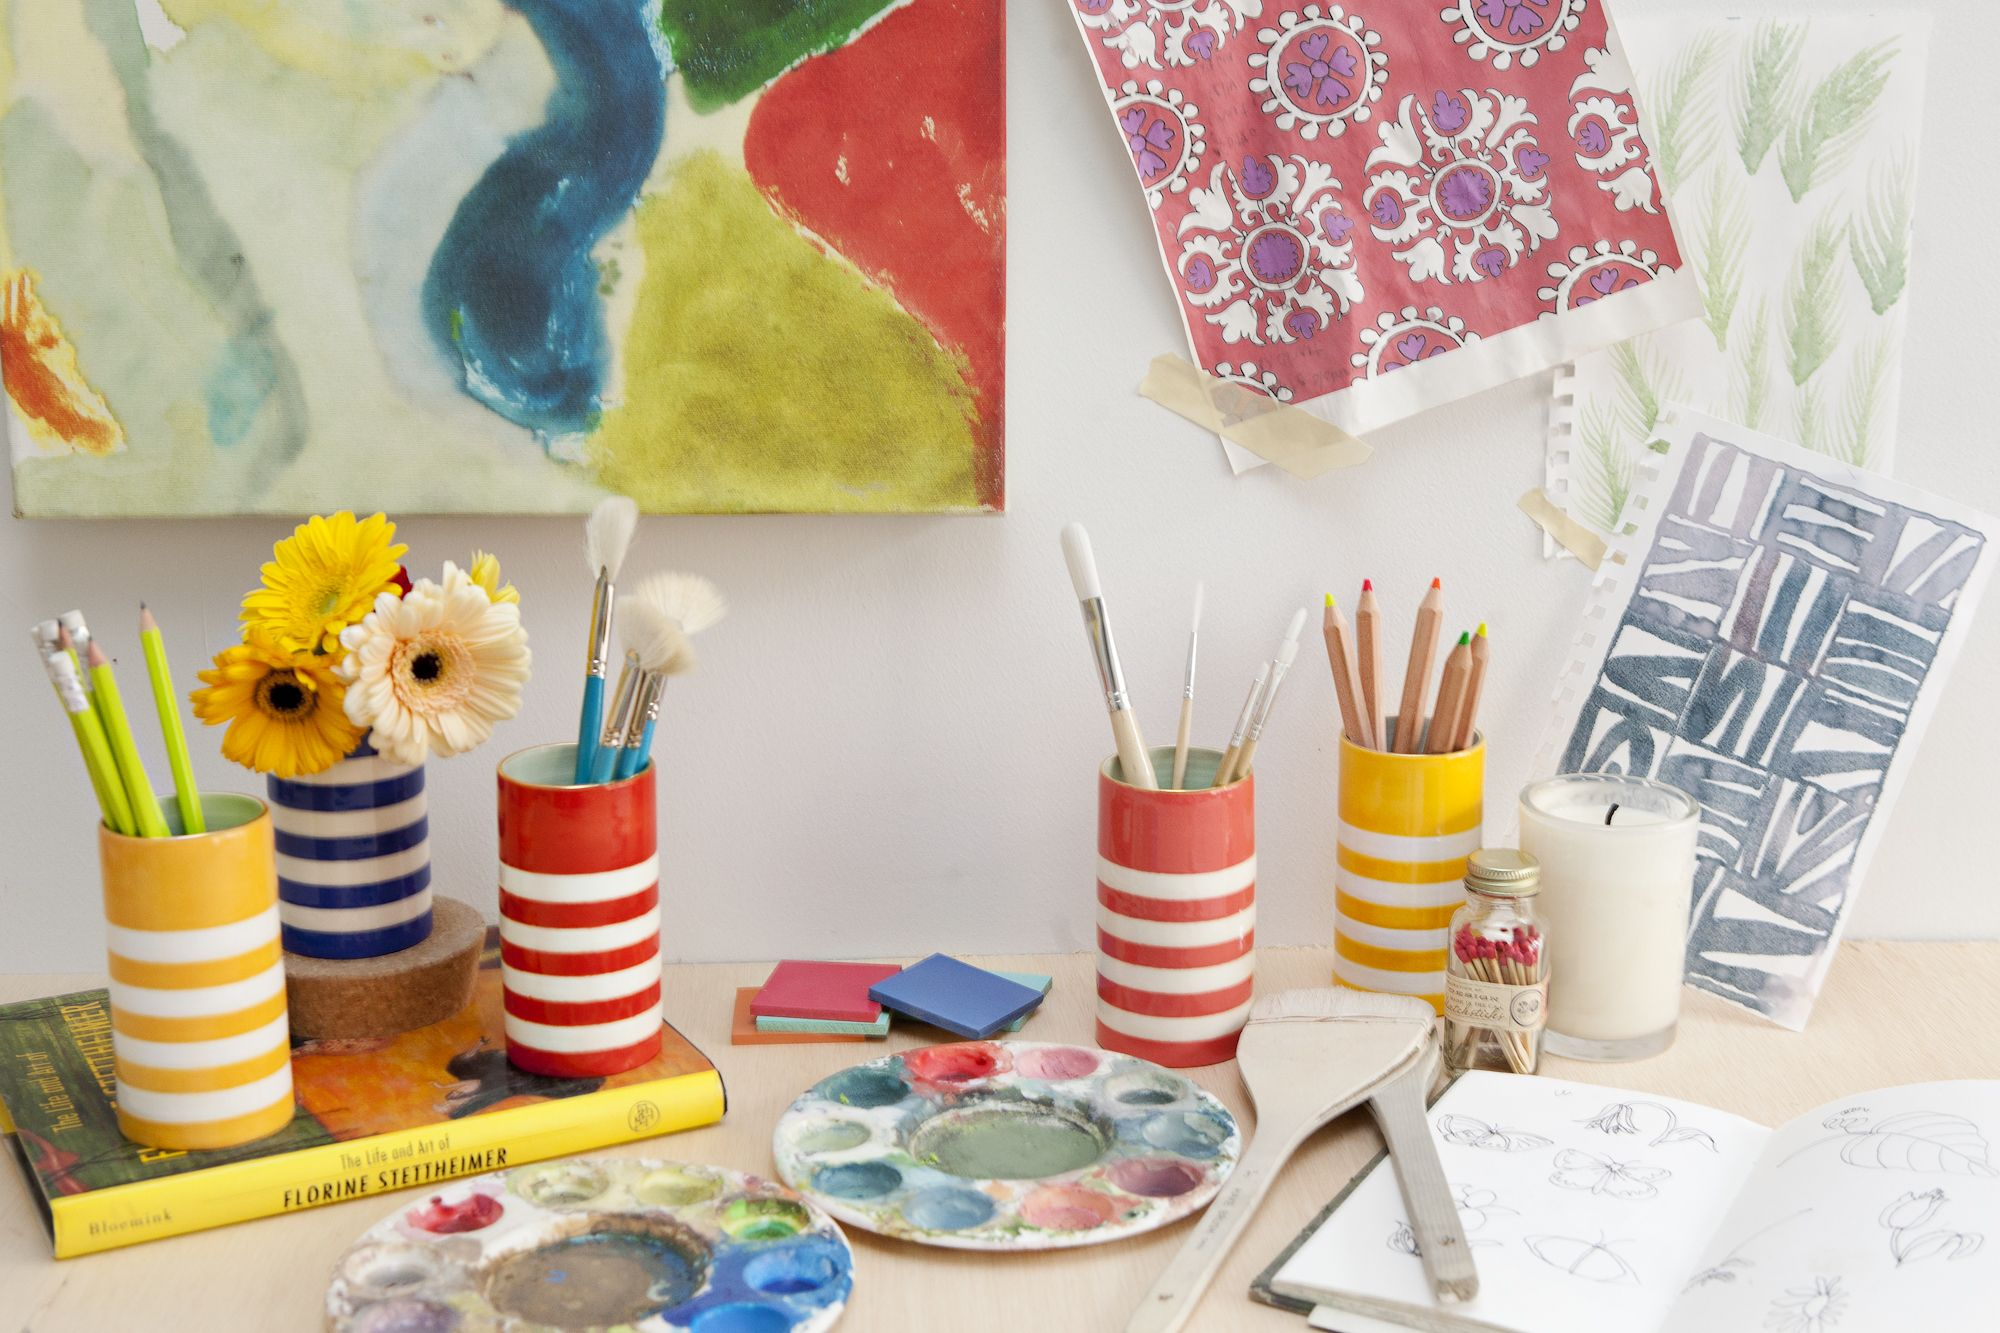 Artists studio jills colorful style pinterest ceramic vase jill rosenwald handmade ceramic vases lamps and trays painted patterns in chic colorways topped with gold edging reviewsmspy